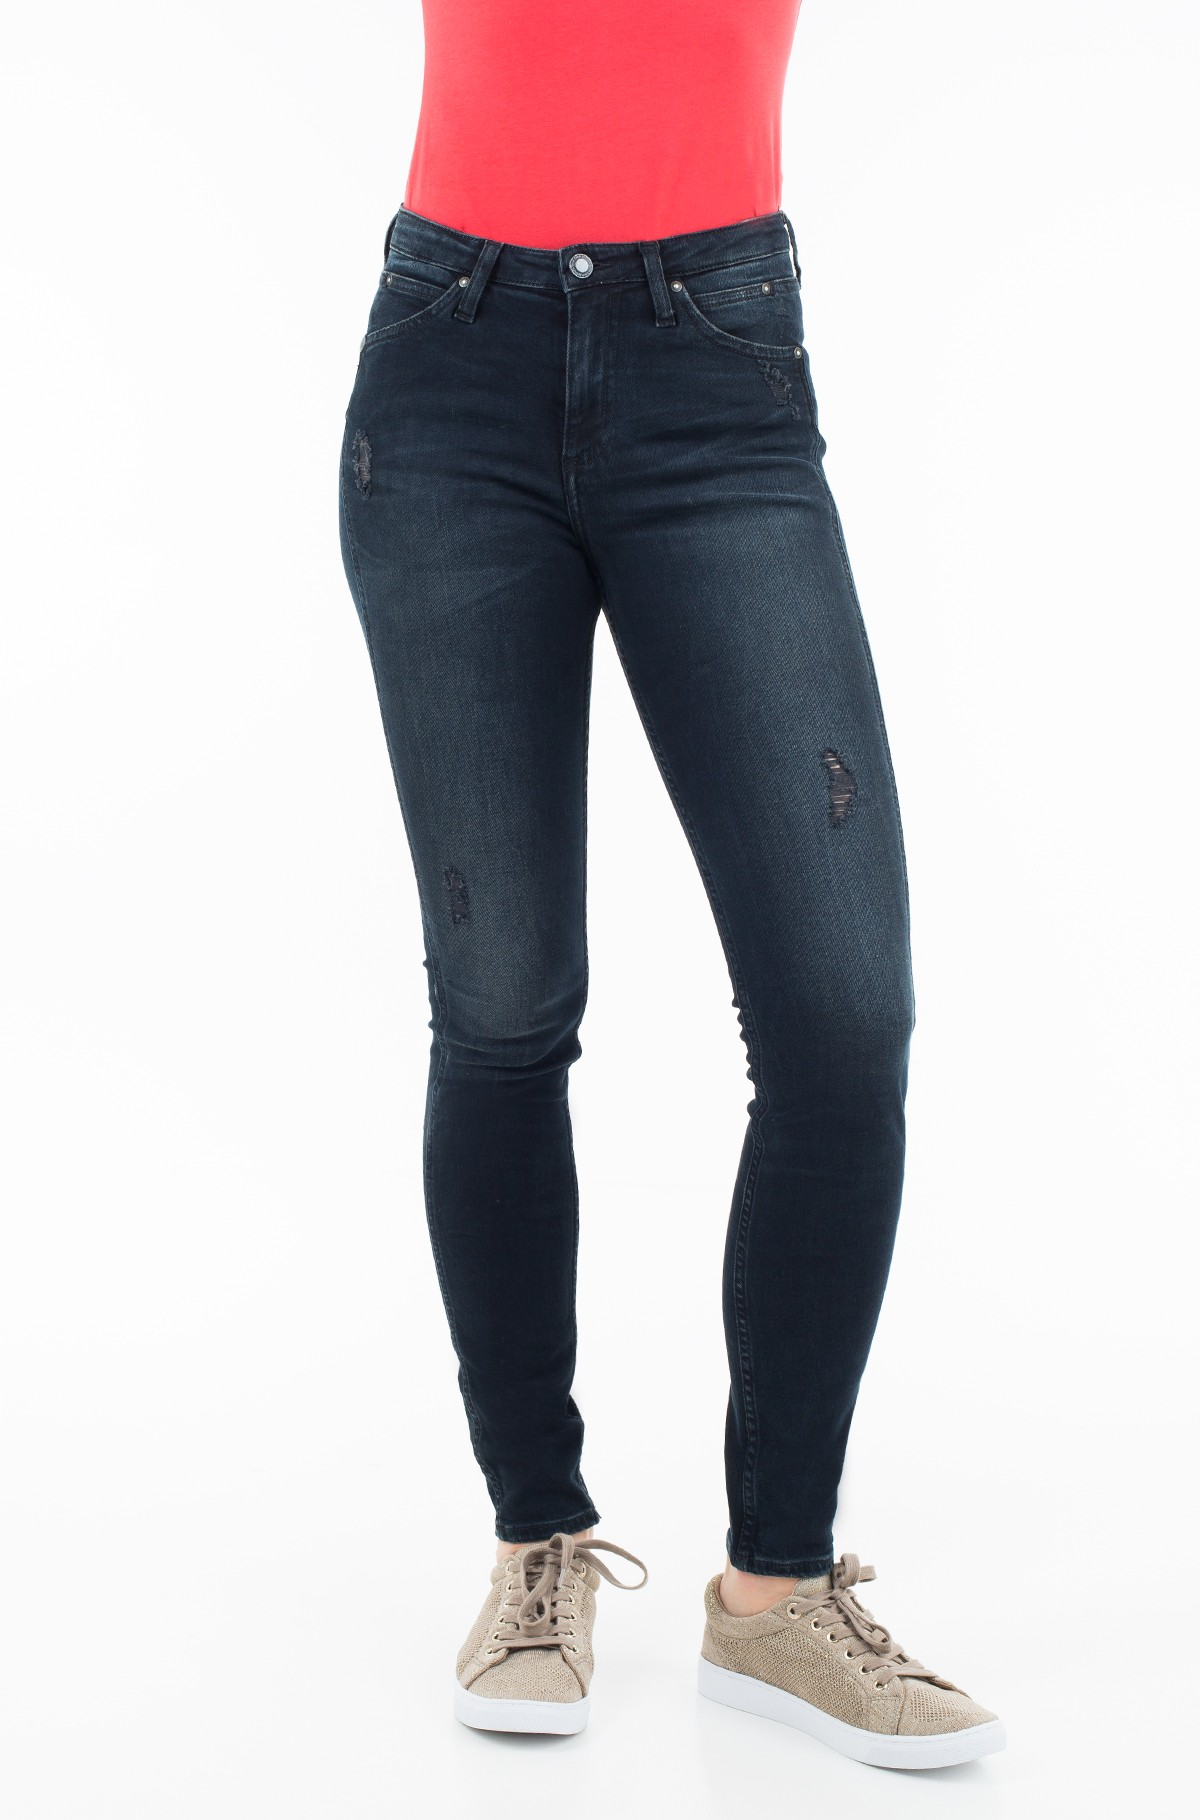 Jeans Sculpted Skinny - Blackwater	-full-1